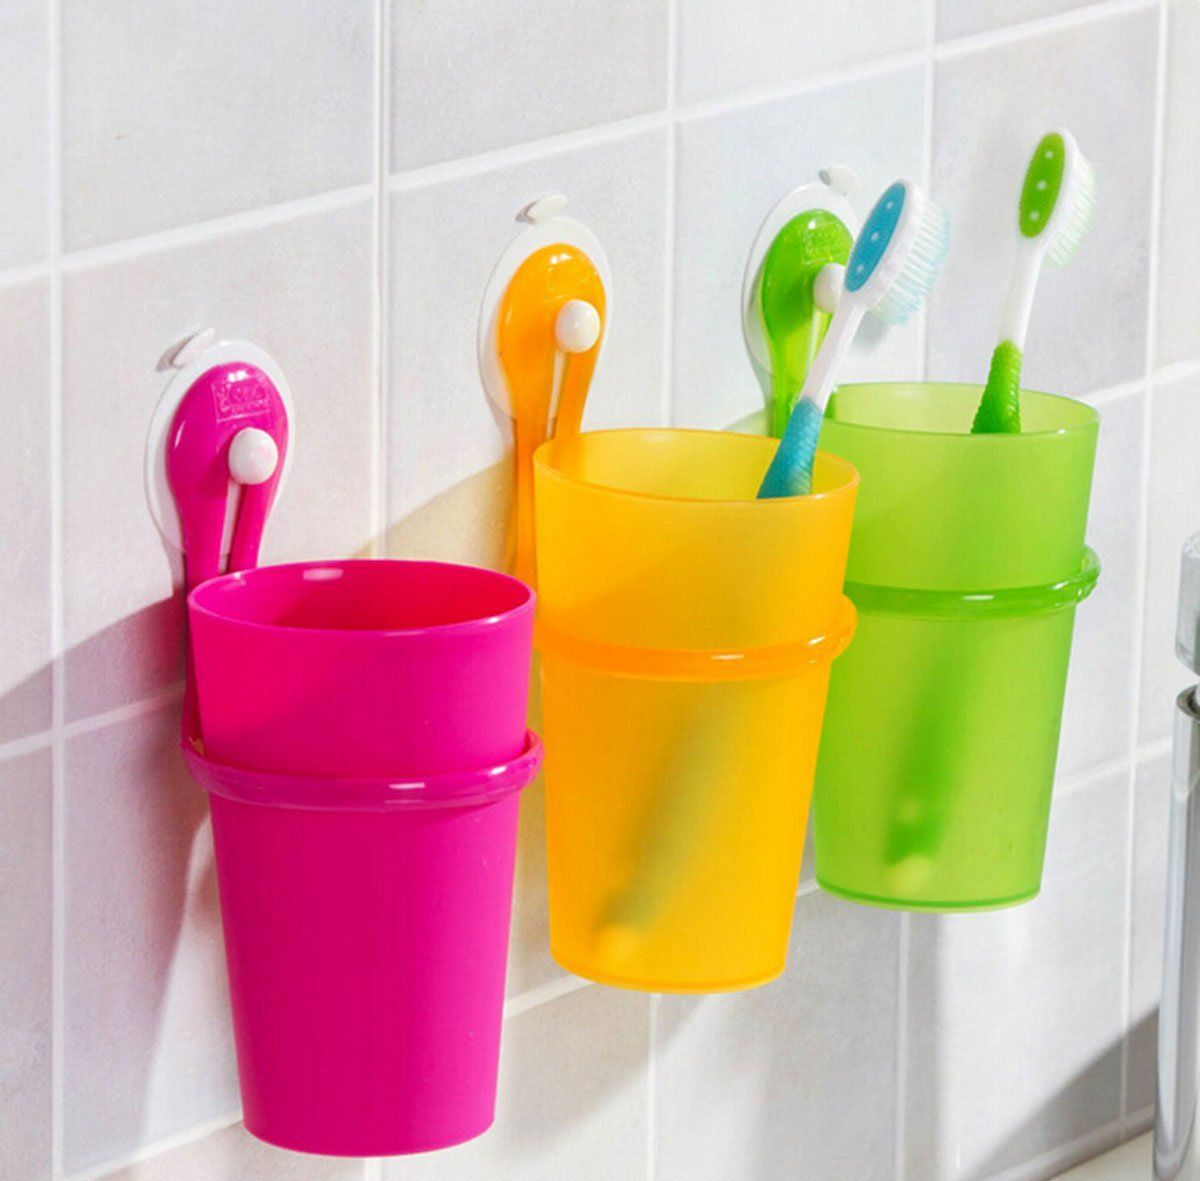 Amazon Com Fusicase Magic Cup Fusicase Creative Bathroom Plastic Suction Cup Hanging Tooth Mug Couples Toothbrush Cup Rose Sports Outdoors